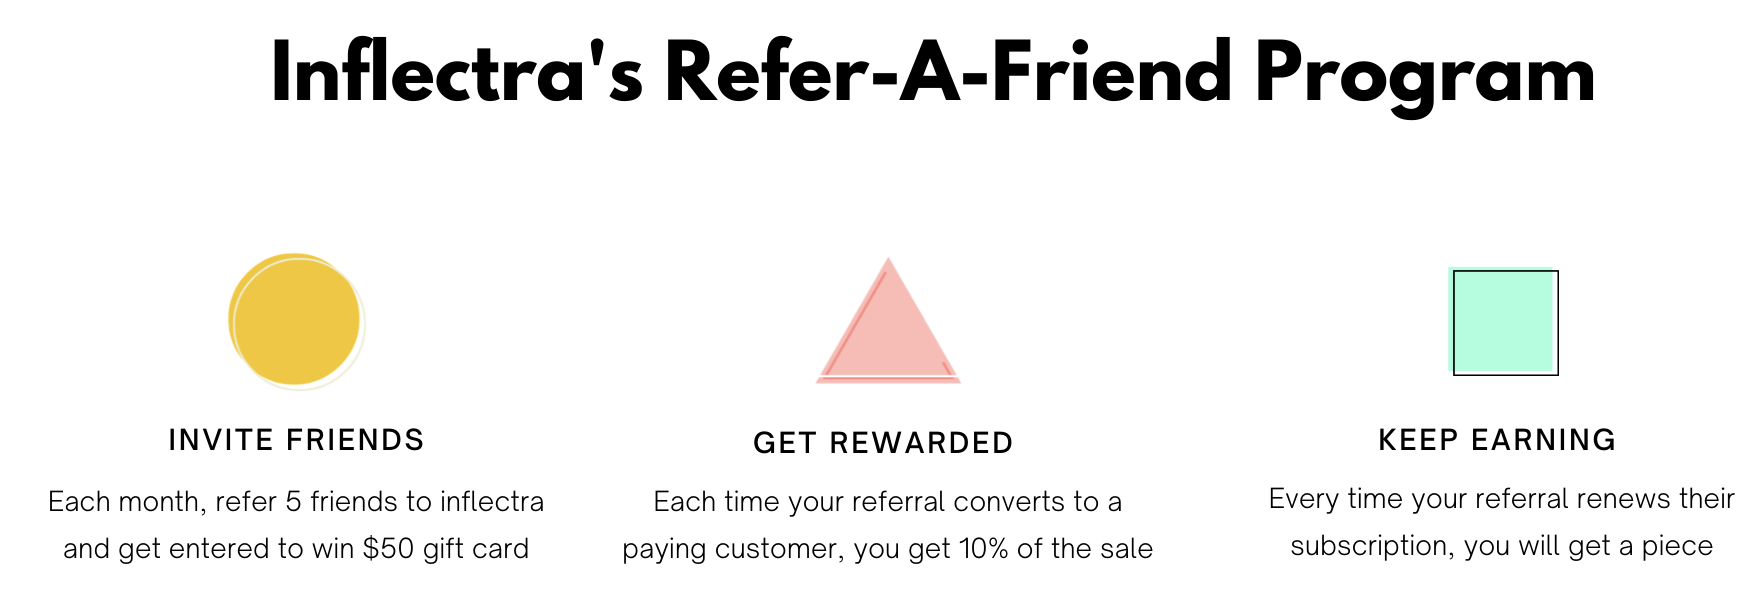 inflectra-refer-a-friend-program-image